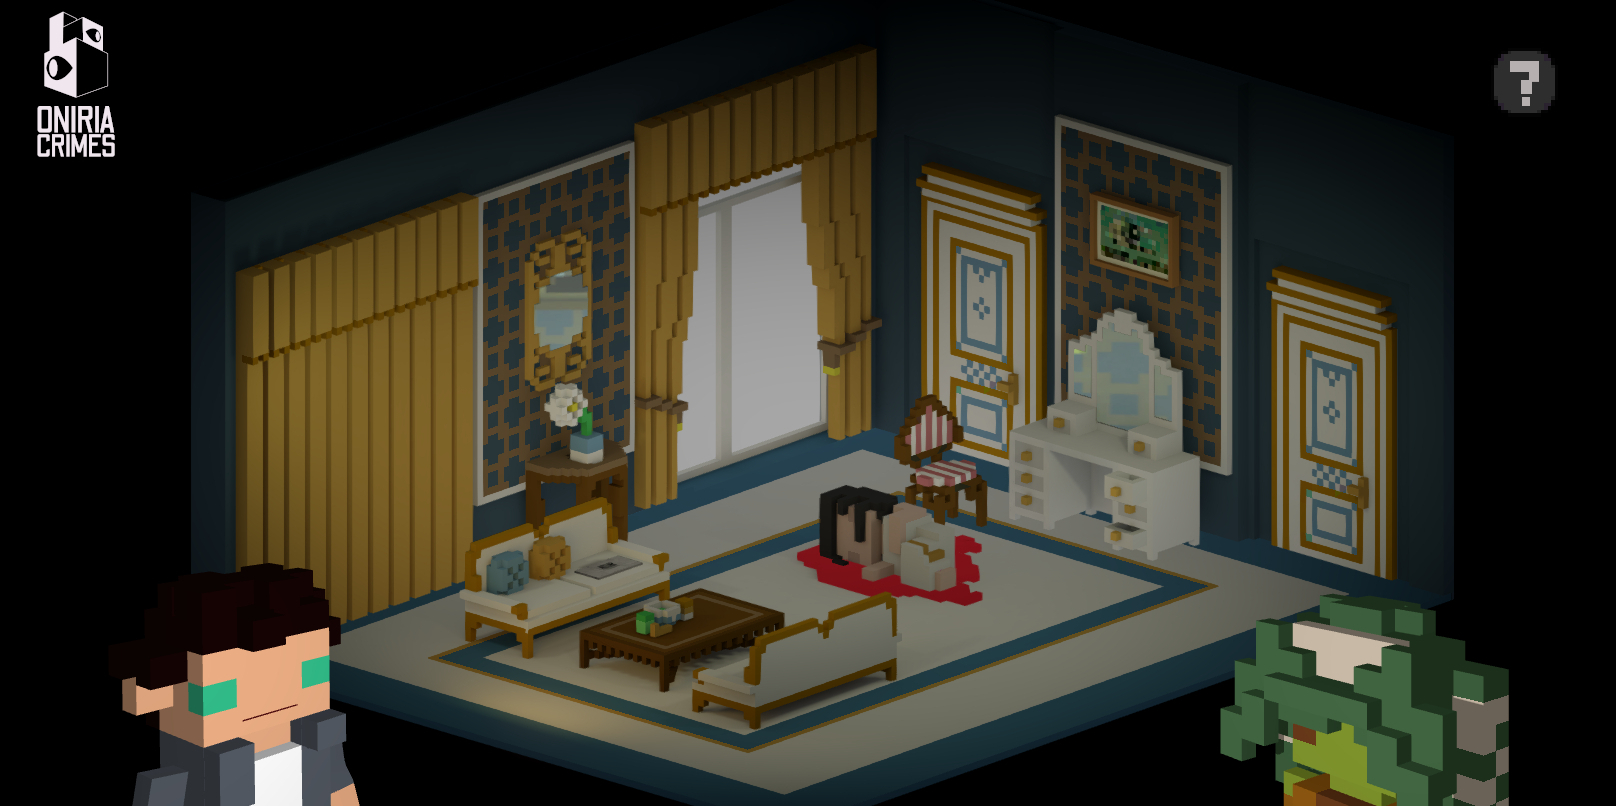 Oniria Crimes is a detective adventure game set in a surreal dream realm